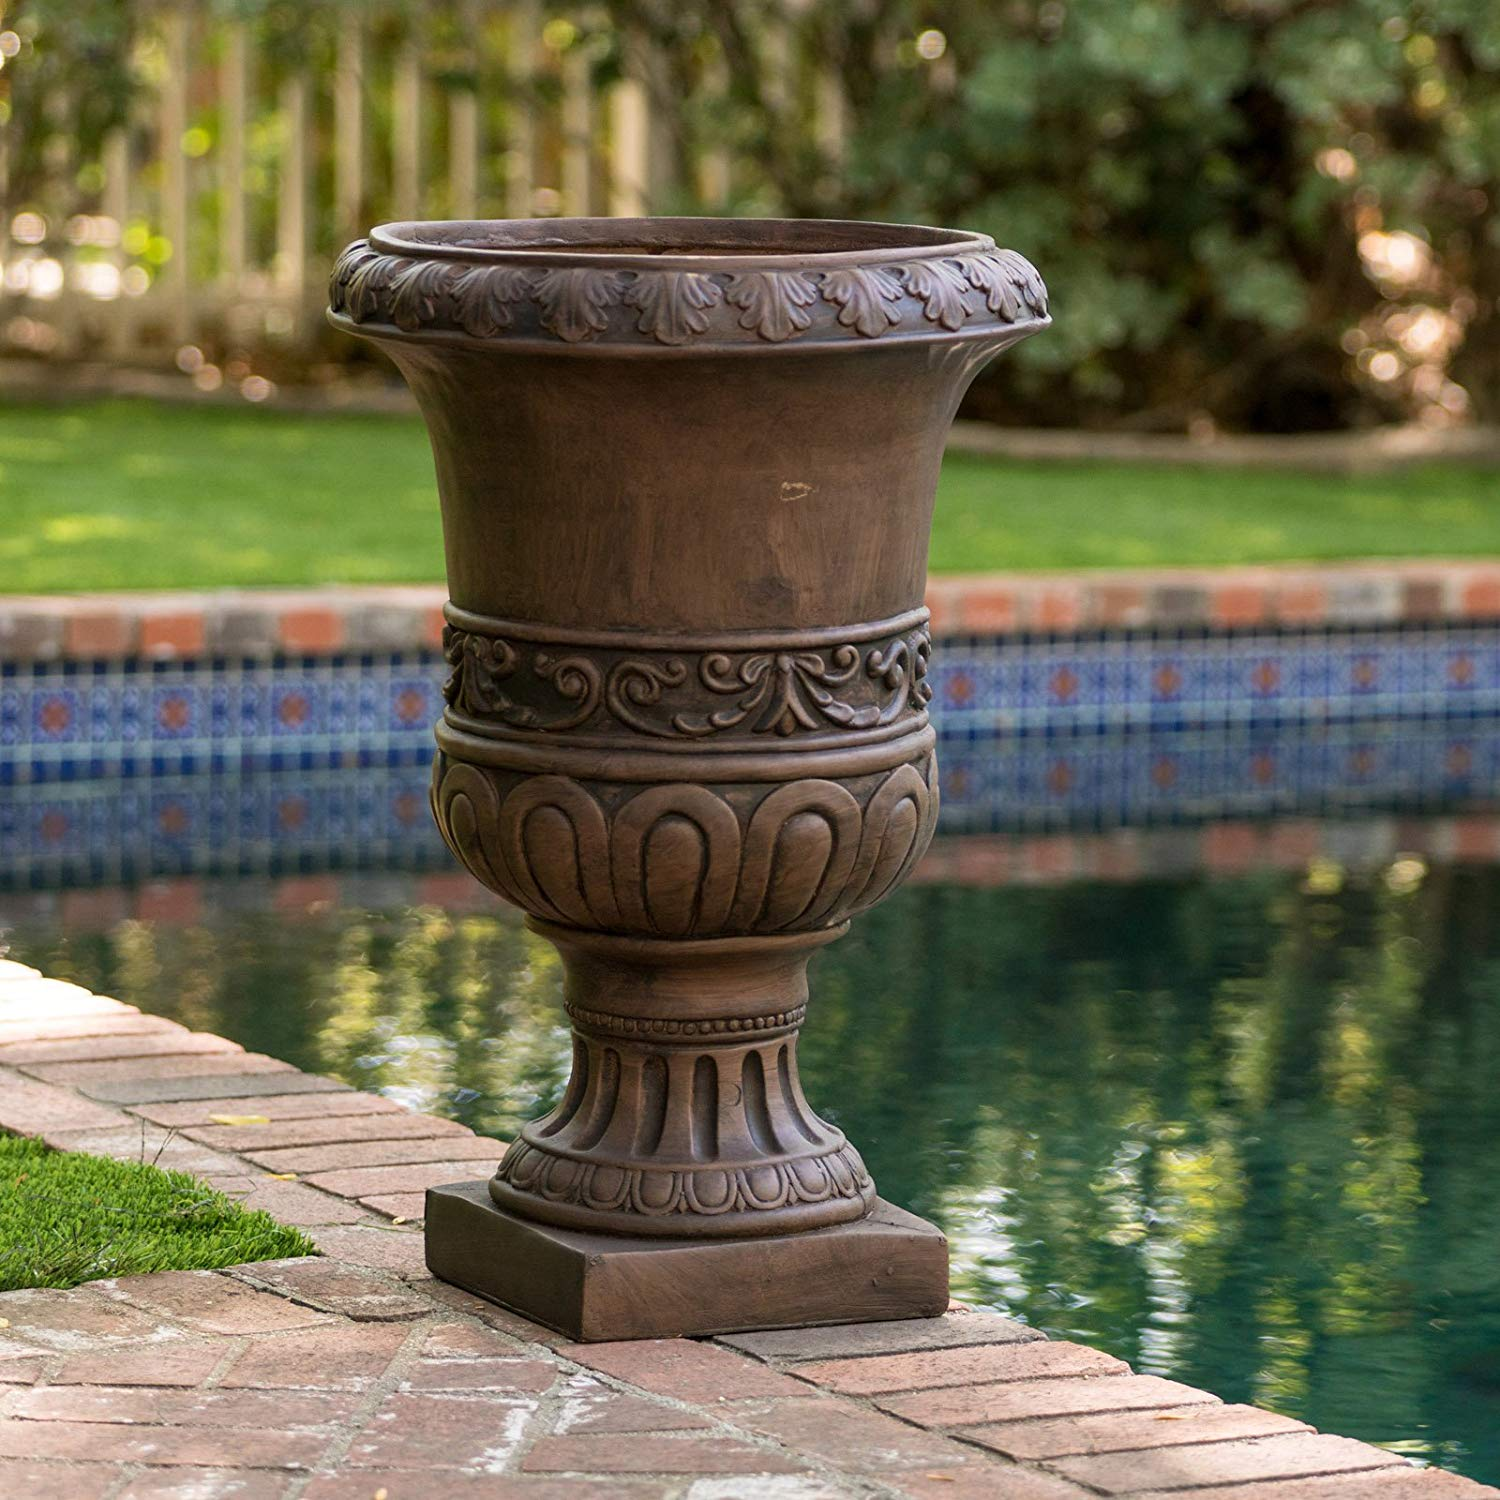 Beautiful Patio Urn Style Planter With Strong And Durable Stone Construction, Features Intricate Turkish Detailing, Suitable For Outdoor And Indoor Use, Brown Finish Reminiscent Of Clay